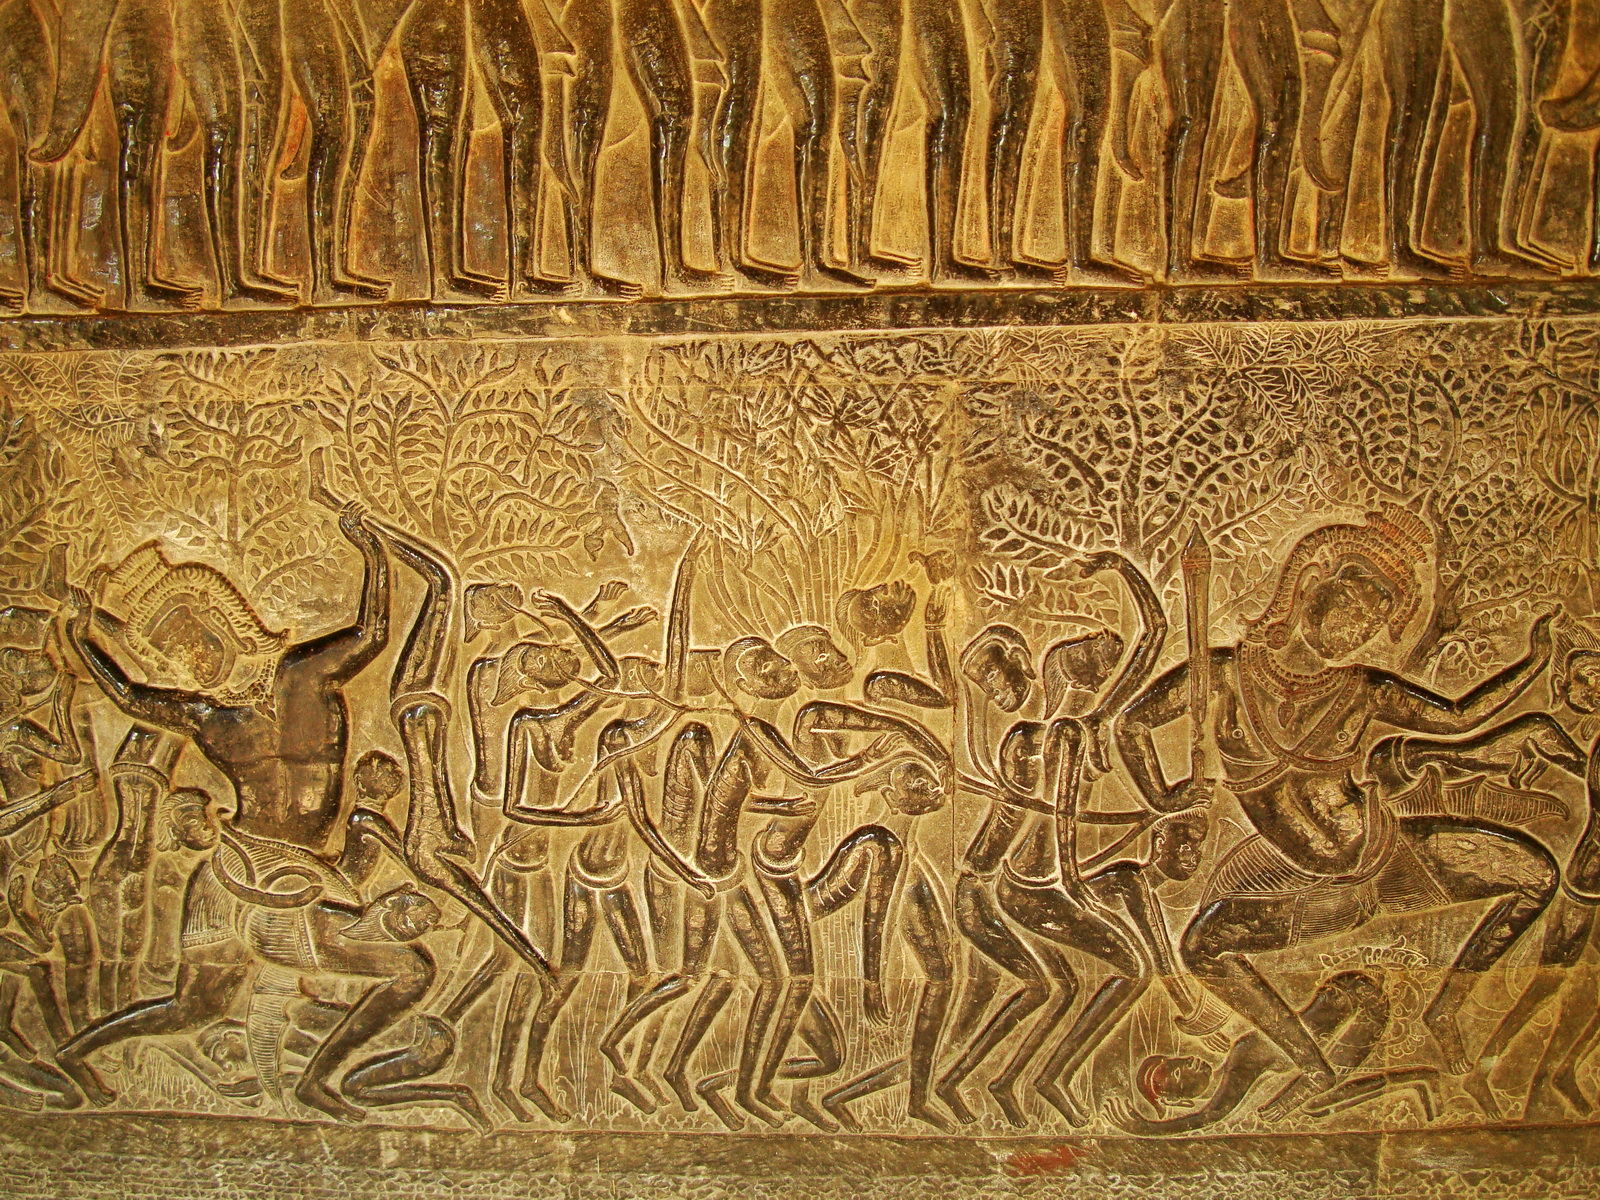 Angkor Wat Bas relief S Gallery E Wing Heavens and Hells 11